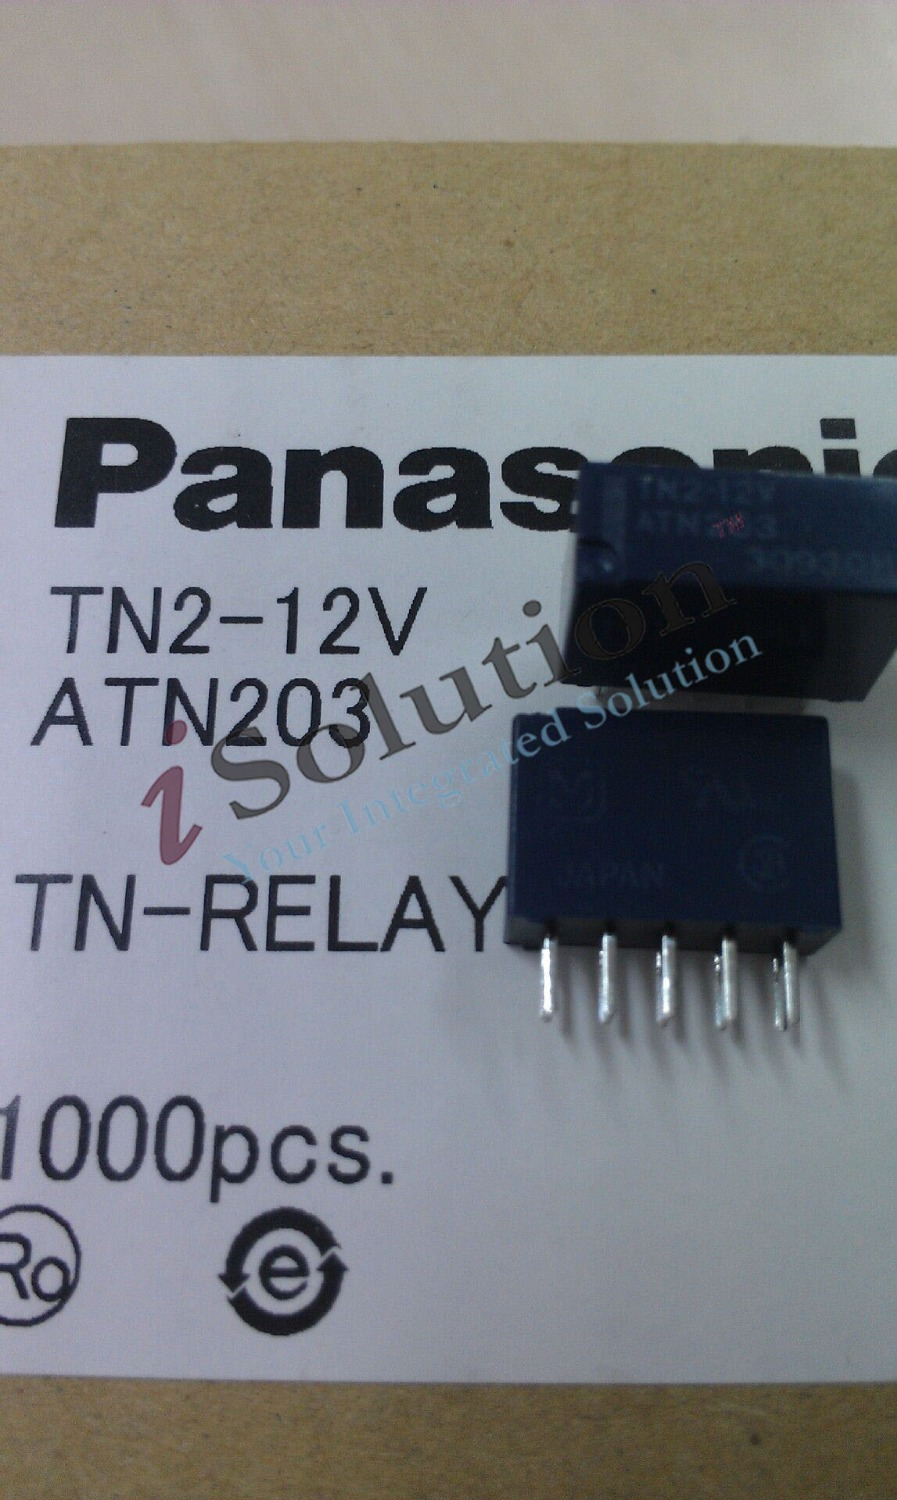 New Original Tn2 12v Atn203 Dc12v 12vdc Relay In Relays From Nais 12 Volt Home Improvement On Alibaba Group